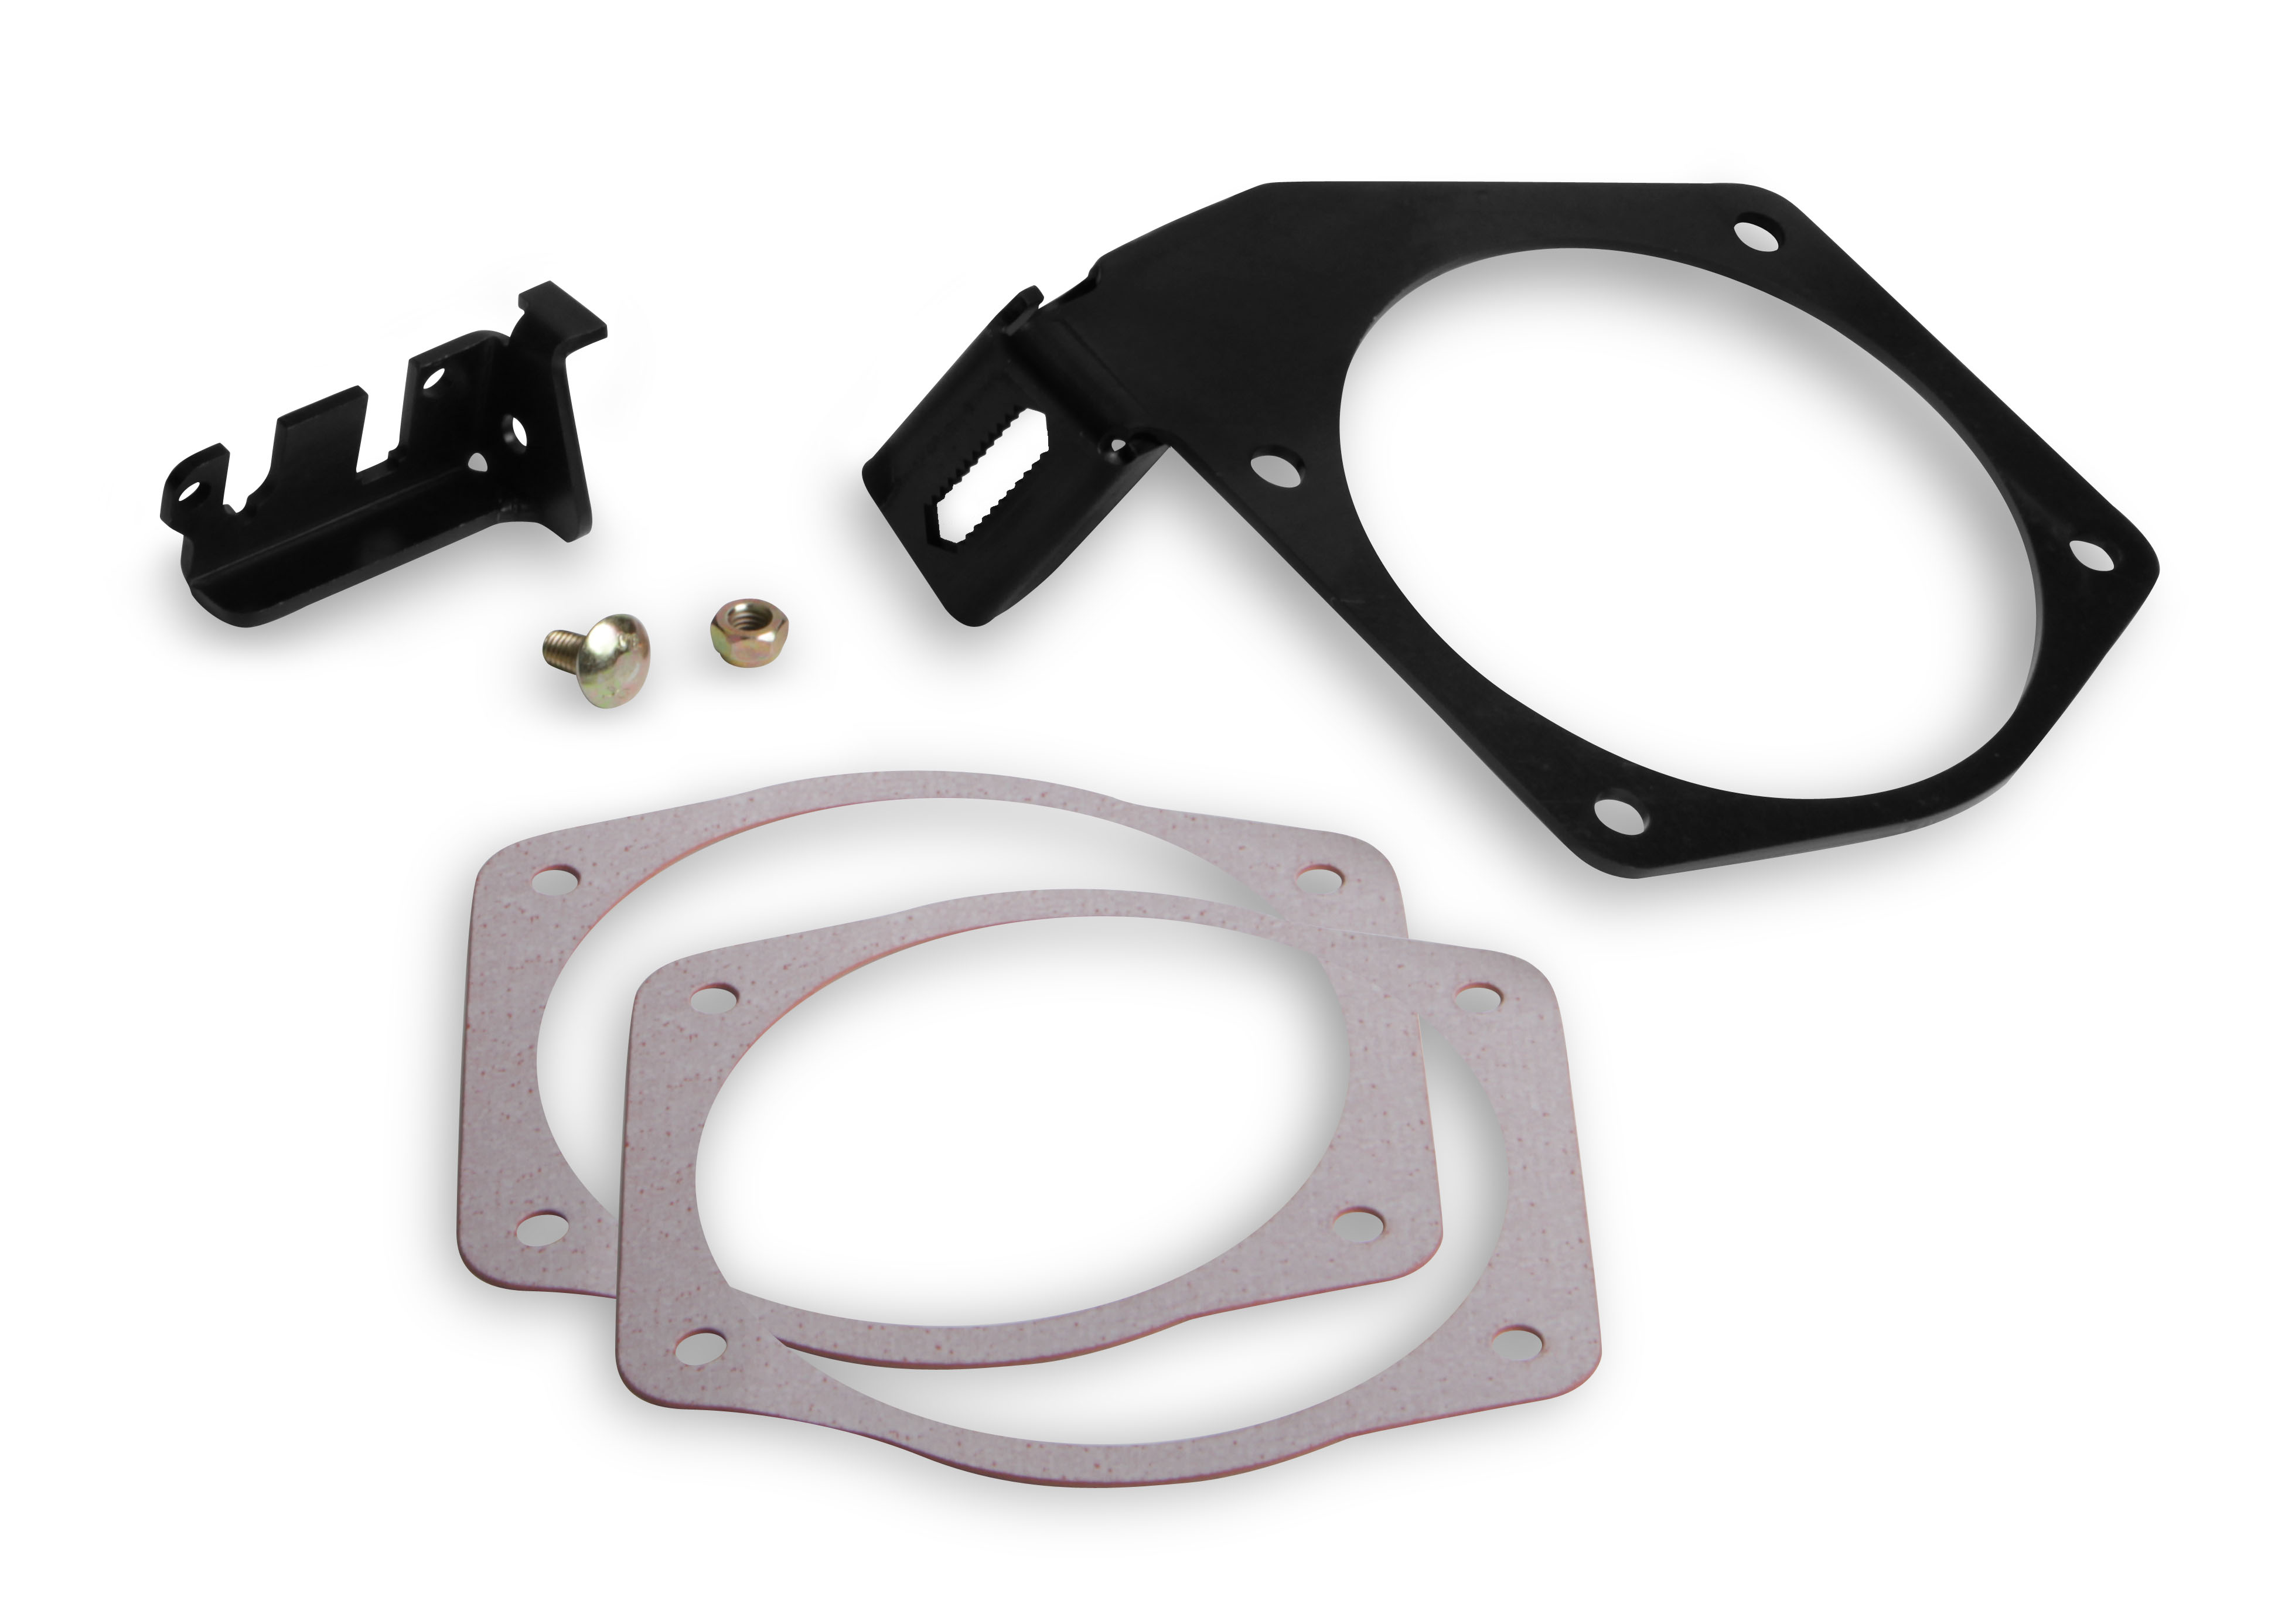 Shop for HOLLEY PERFORMANCE PRODUCTS Throttle Brackets